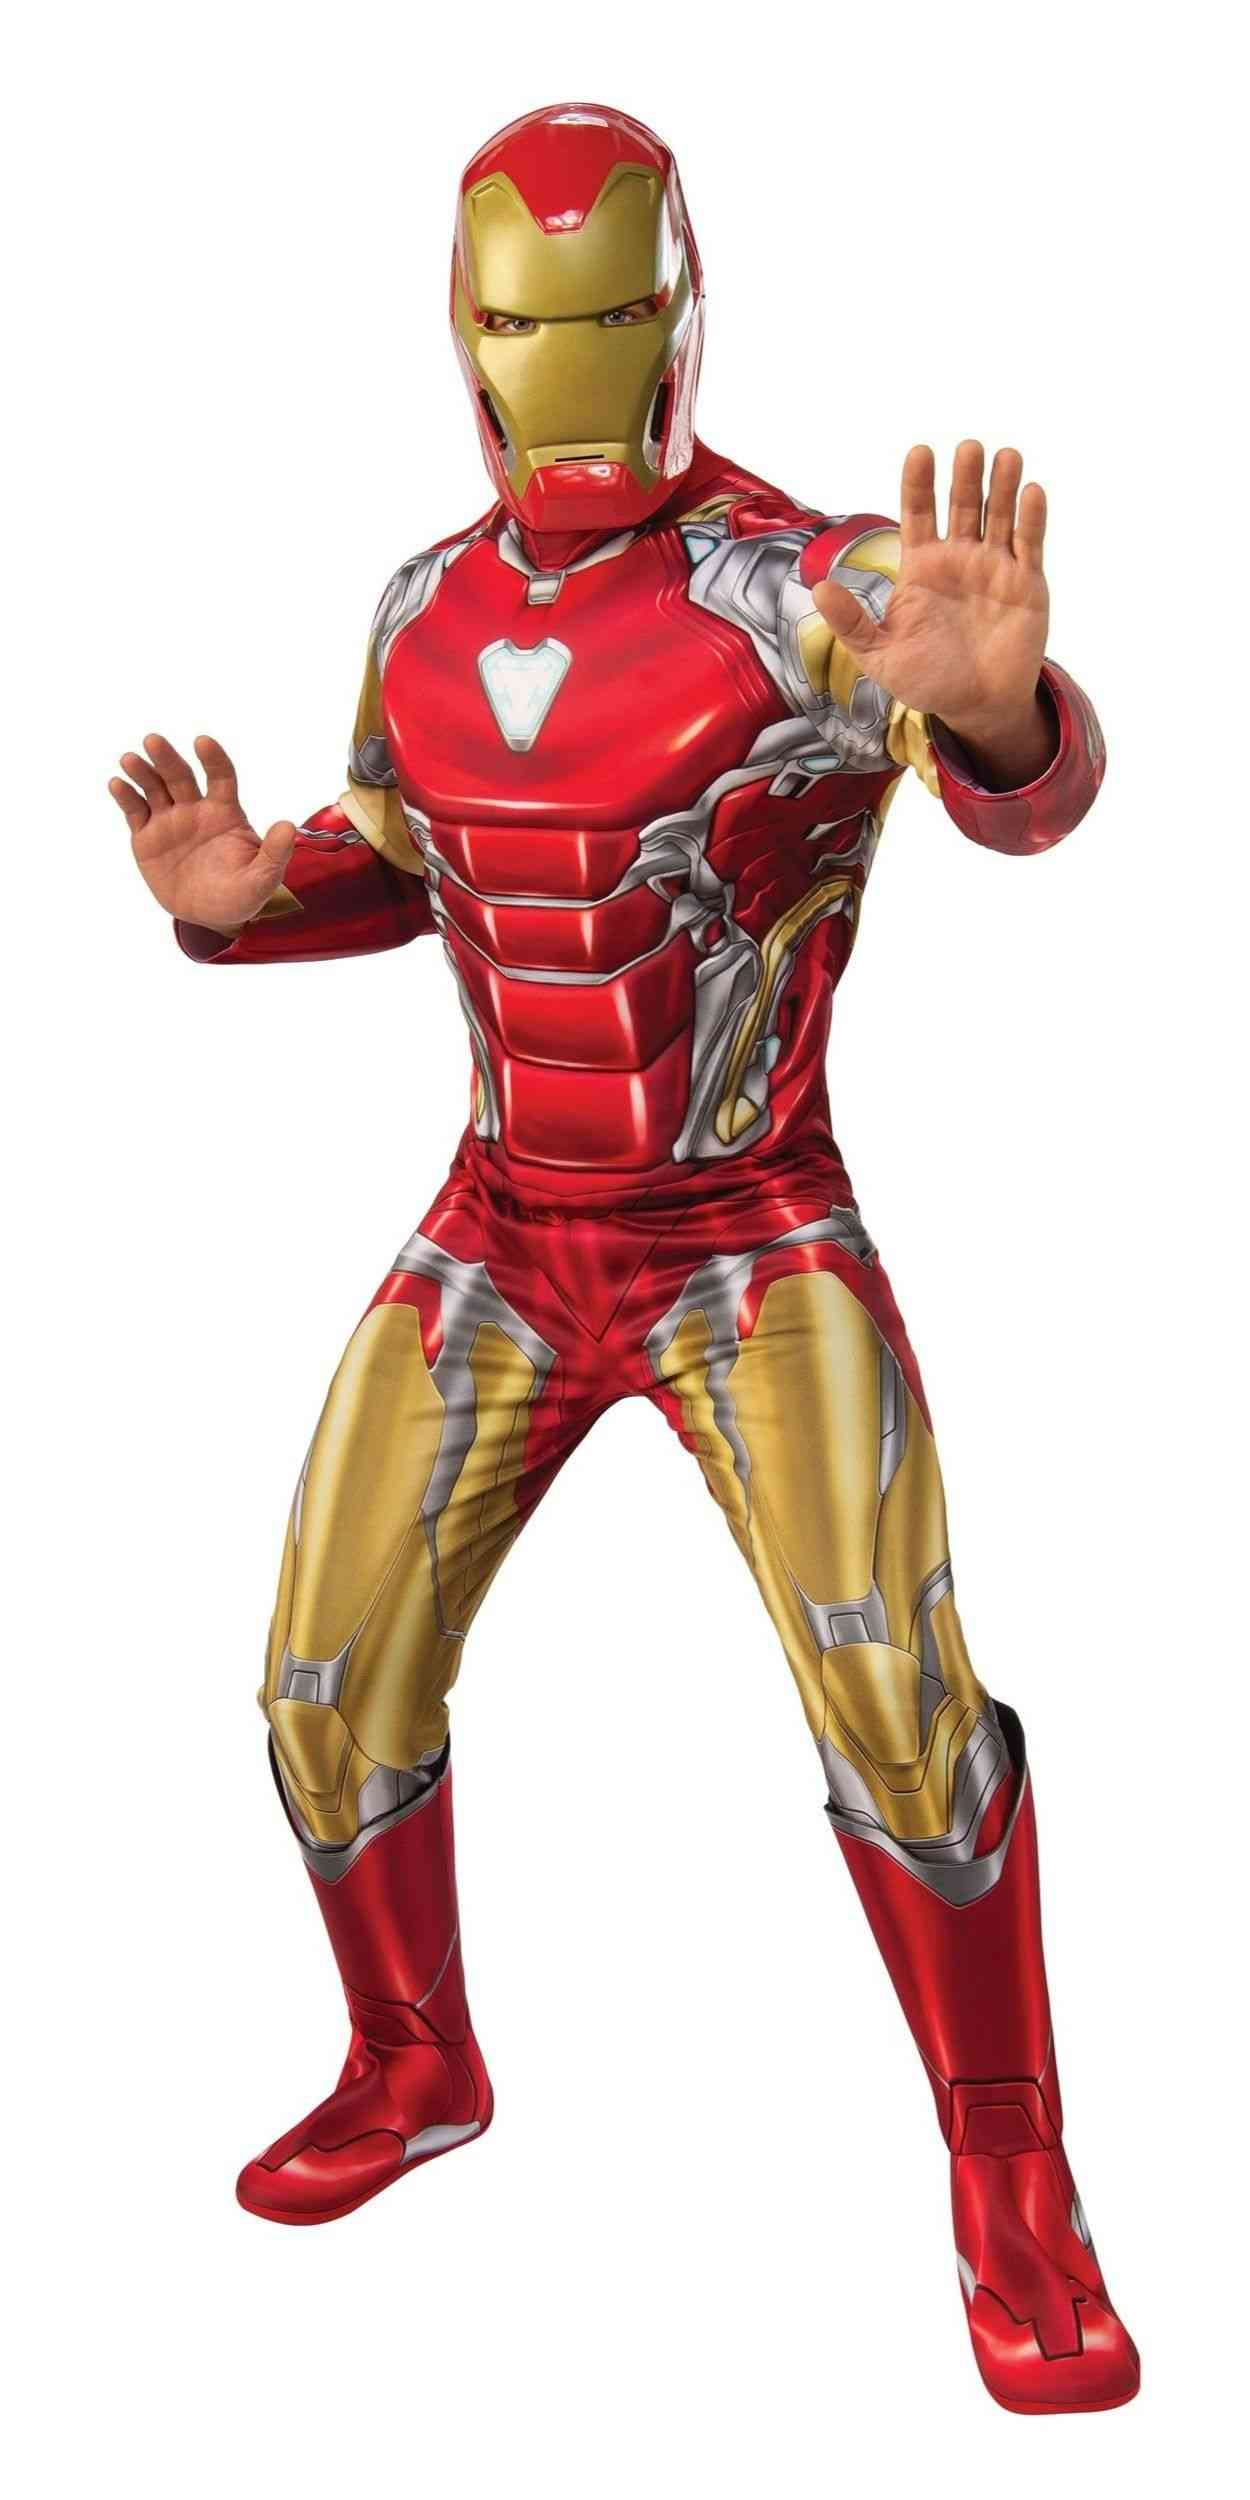 Man in Iron Man Party Costume